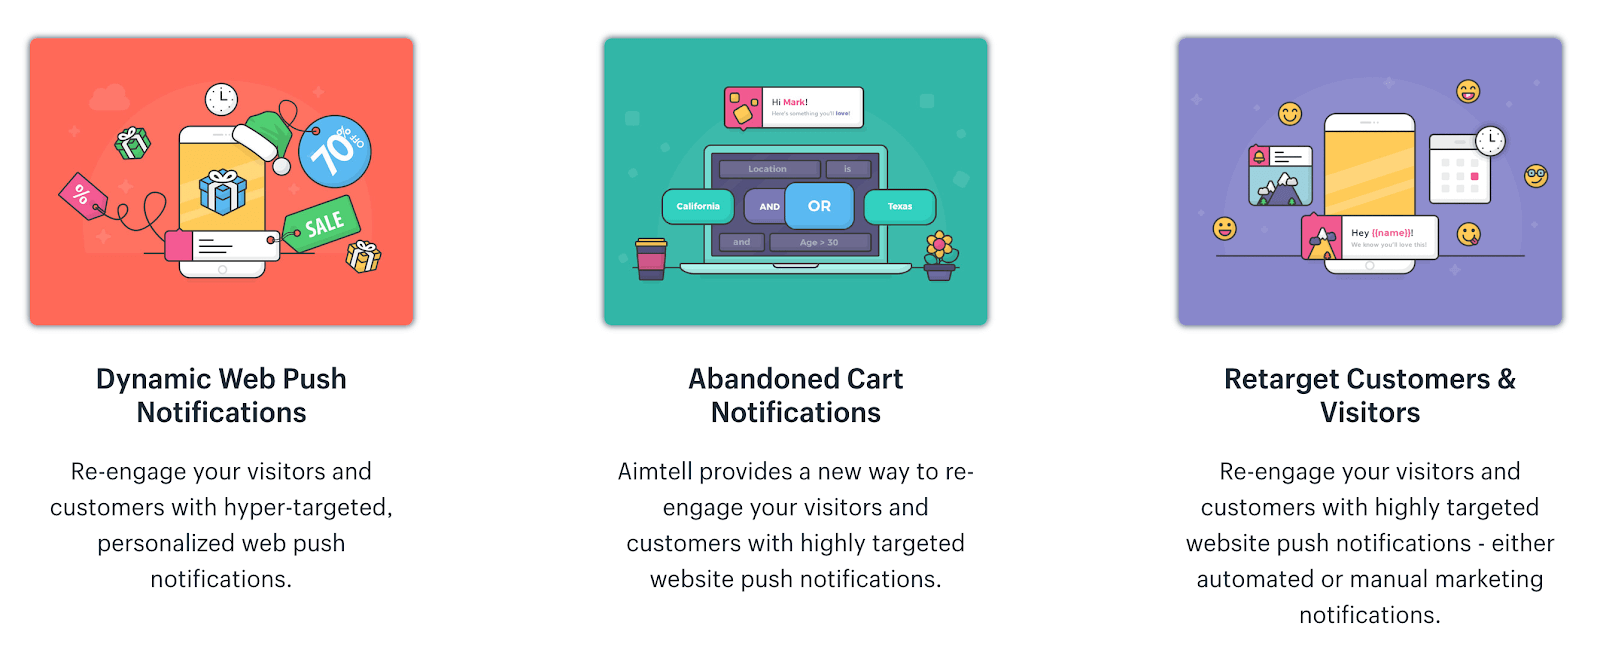 Aimtell dynamic, abandoned cart and retarget web pushes